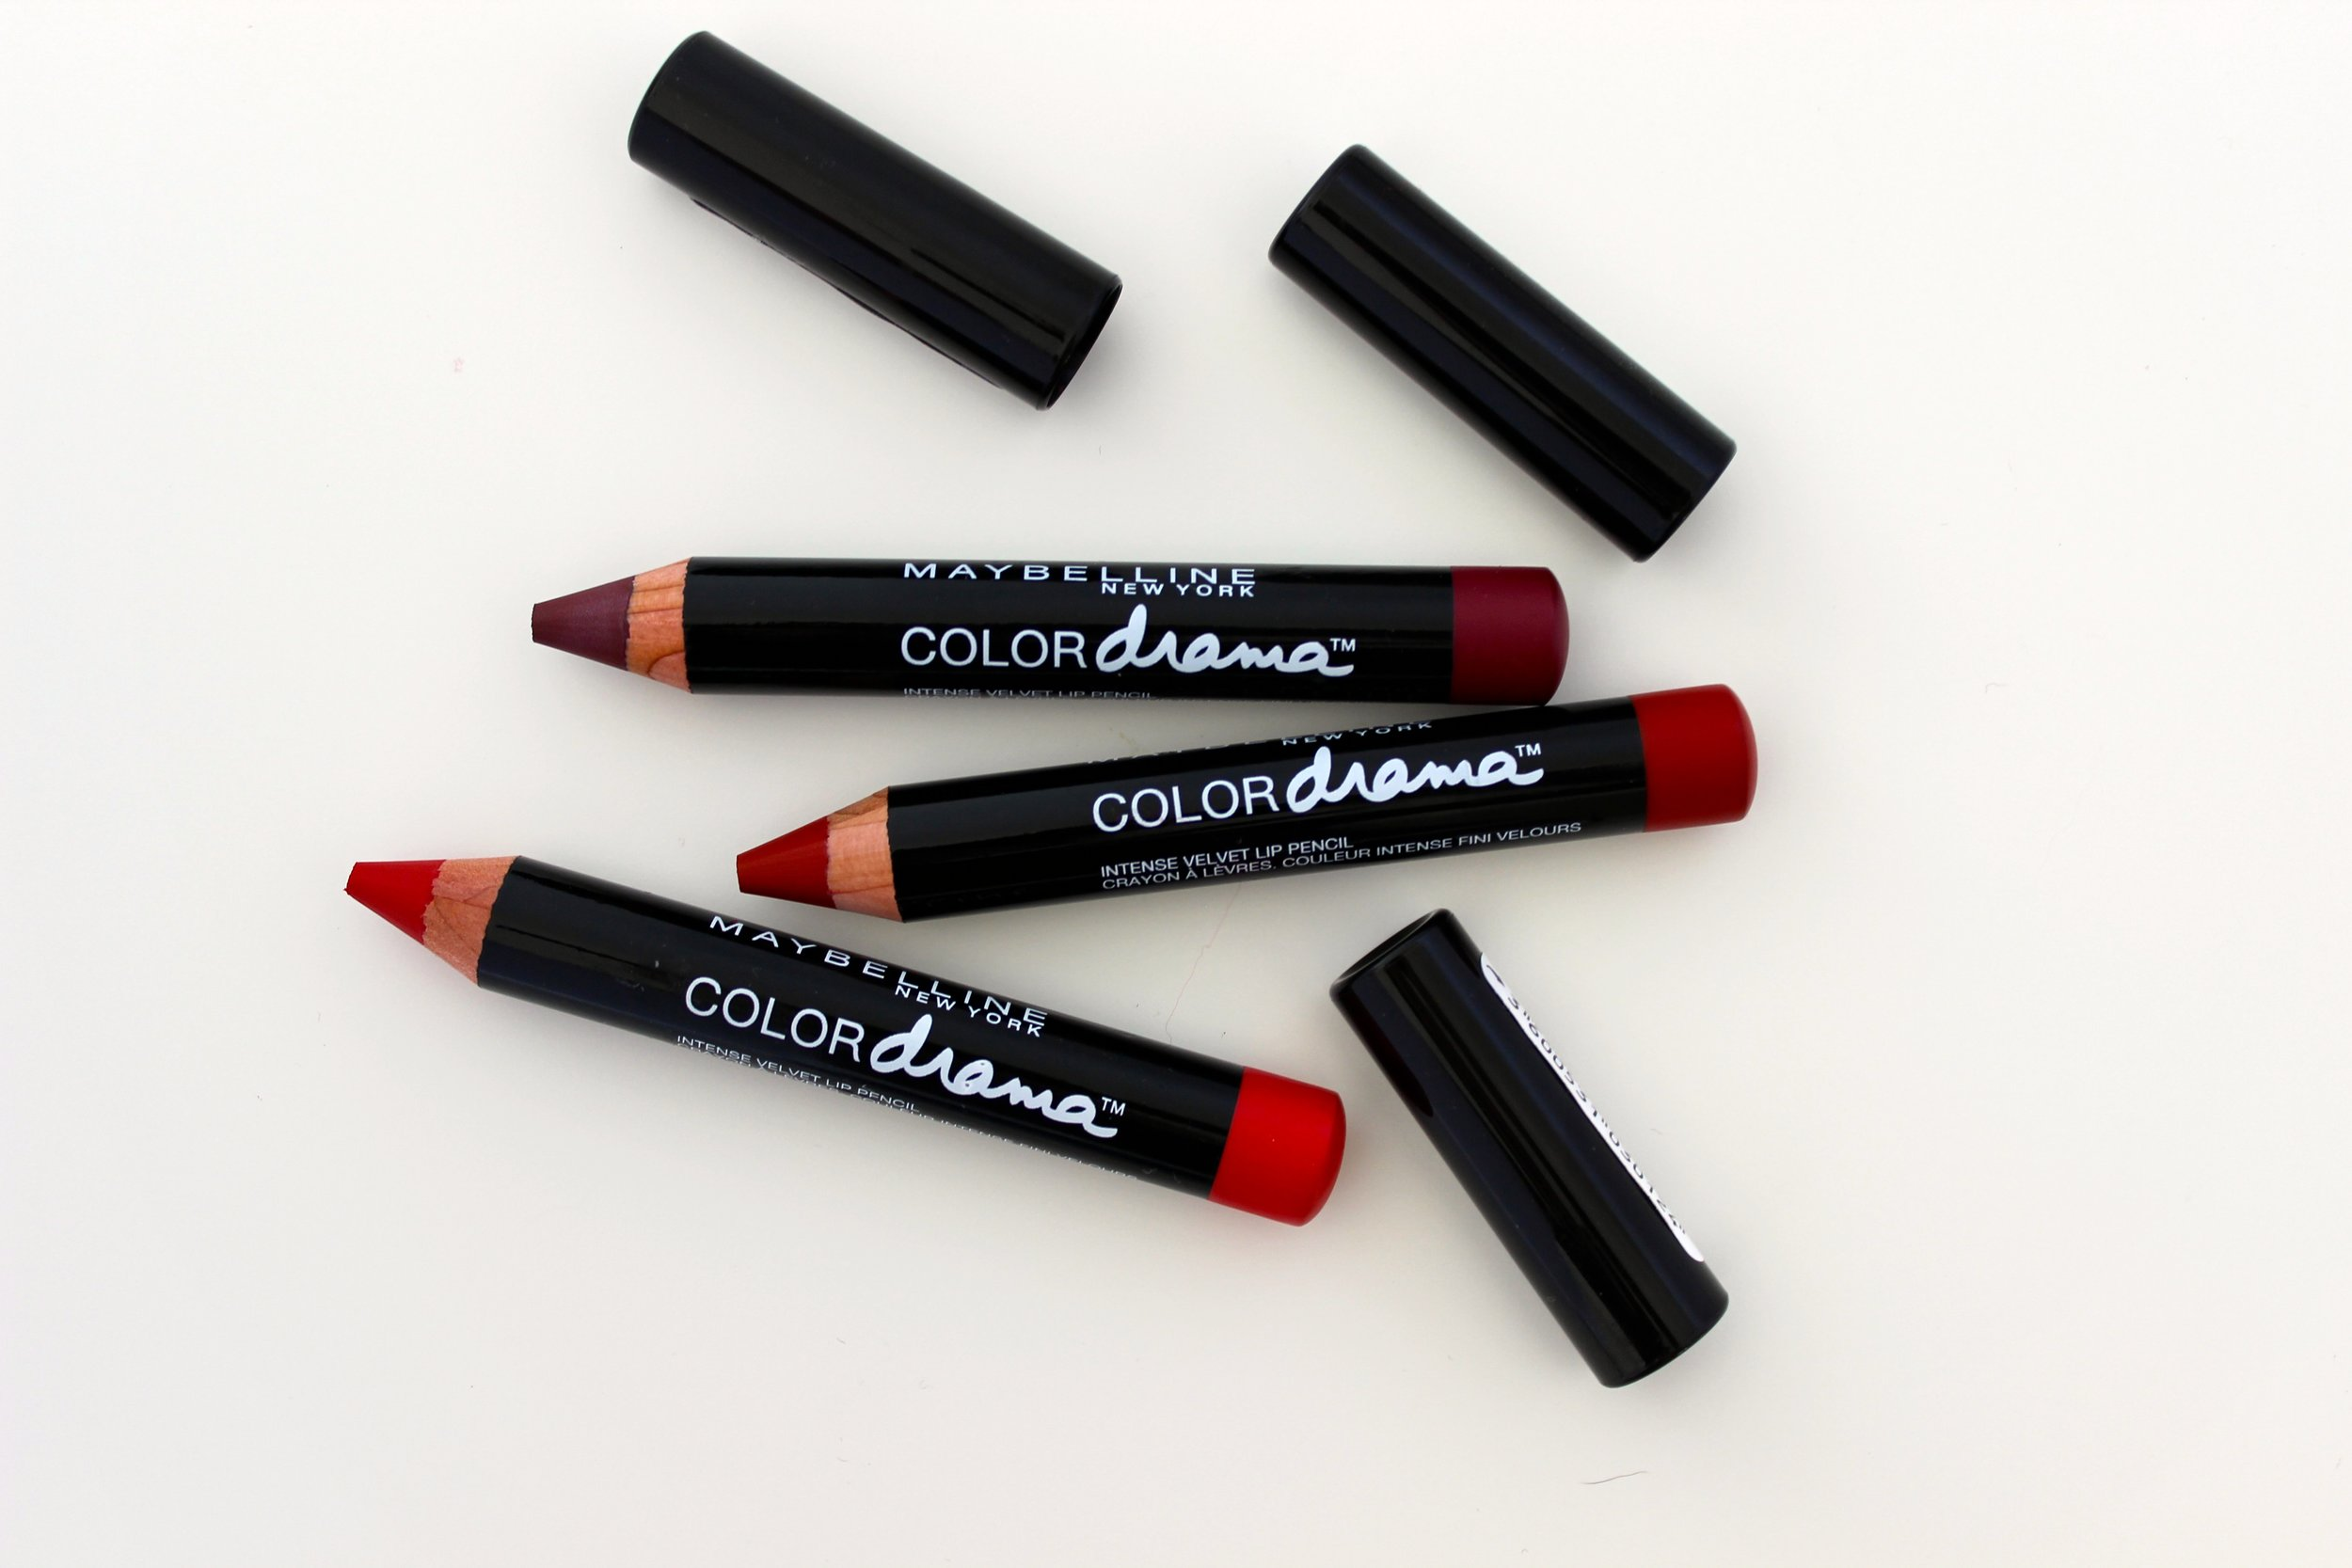 Maybelline Color Drama Lip Crayons